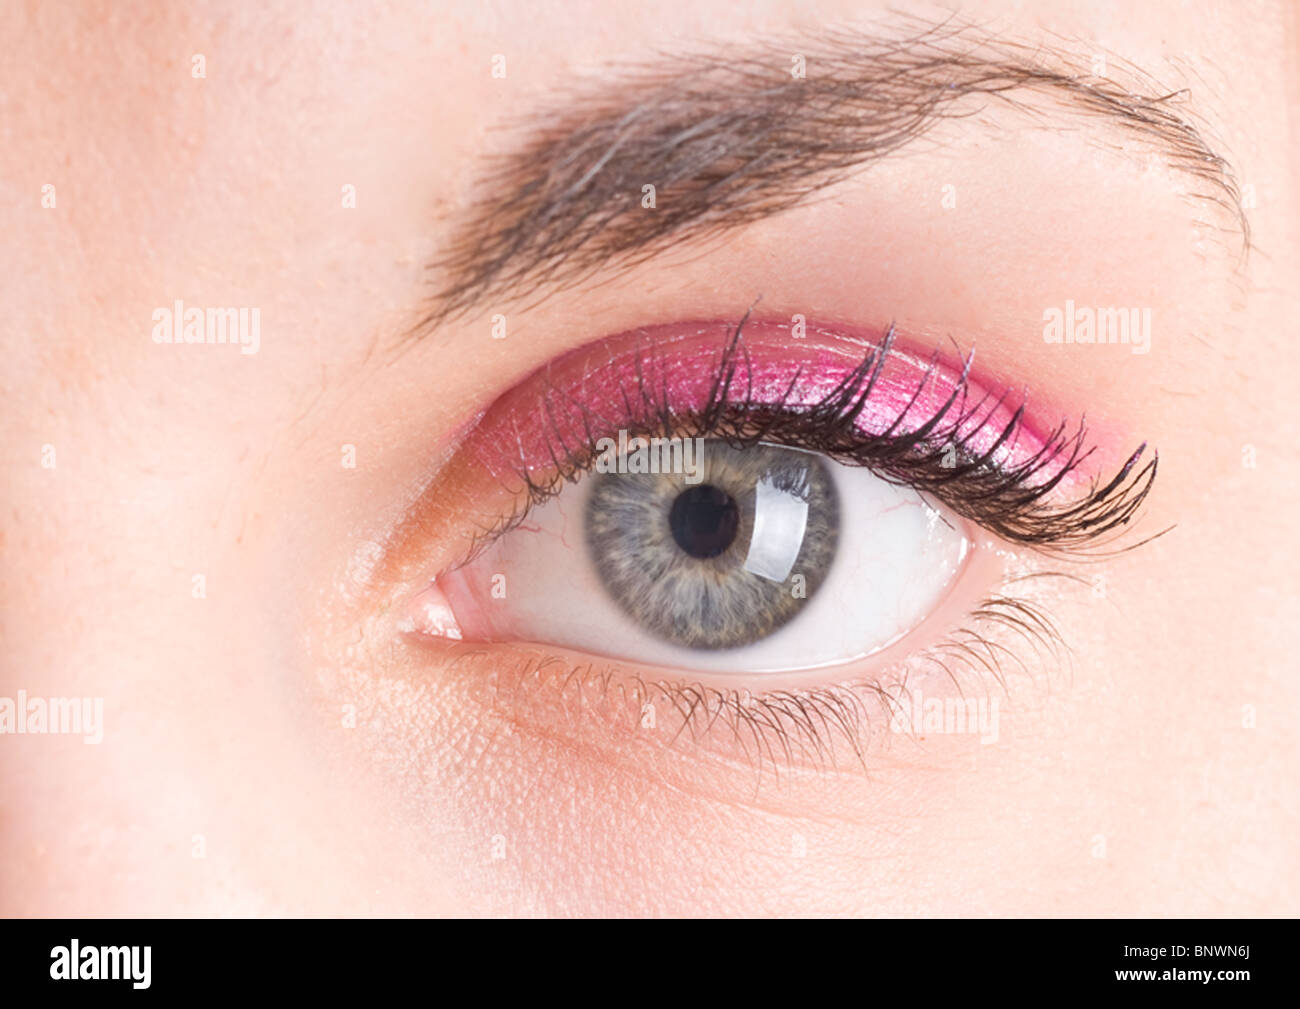 Eye Closeup Lashes Eyelids Pupil Iris - Stock Image